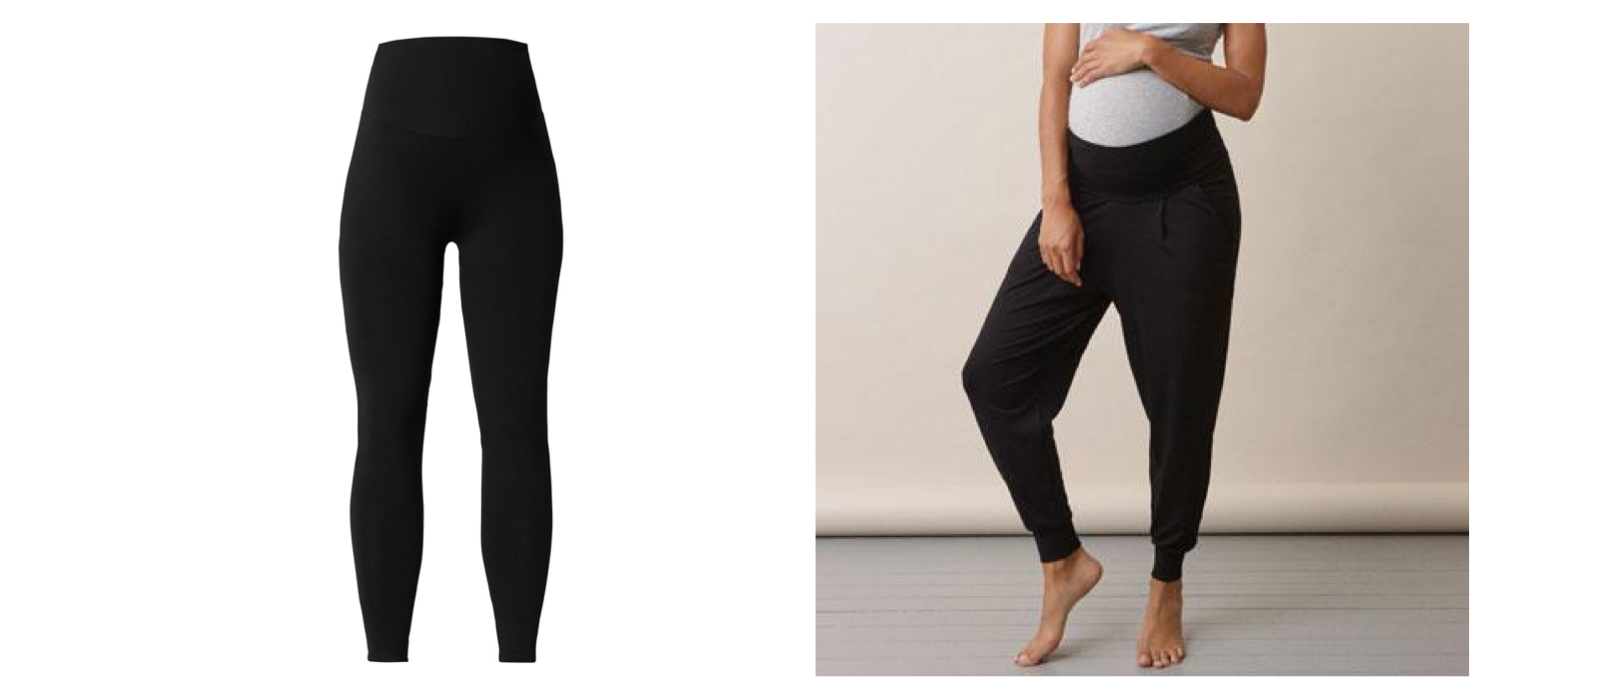 Shop Maternity Bottoms and Leggings | Mother's Day 2020 | Carry Maternity | Toronto Canada